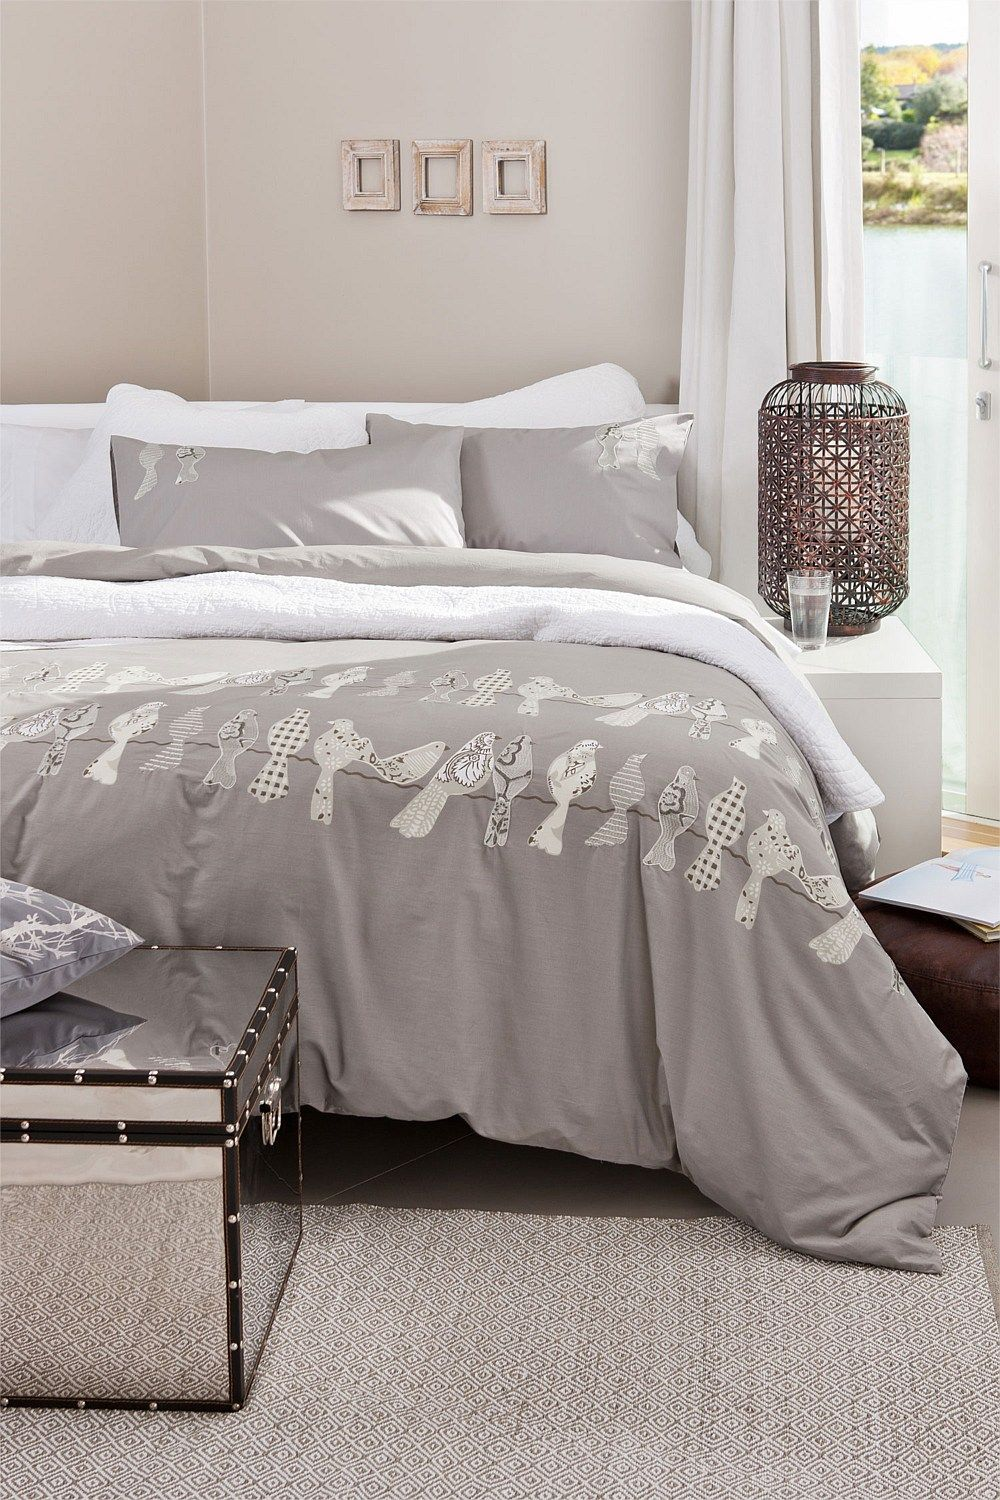 Bird Duvet Cover | Buy Bedding Online At EziBuy | Bed Linen Includes Sheet  Sets,